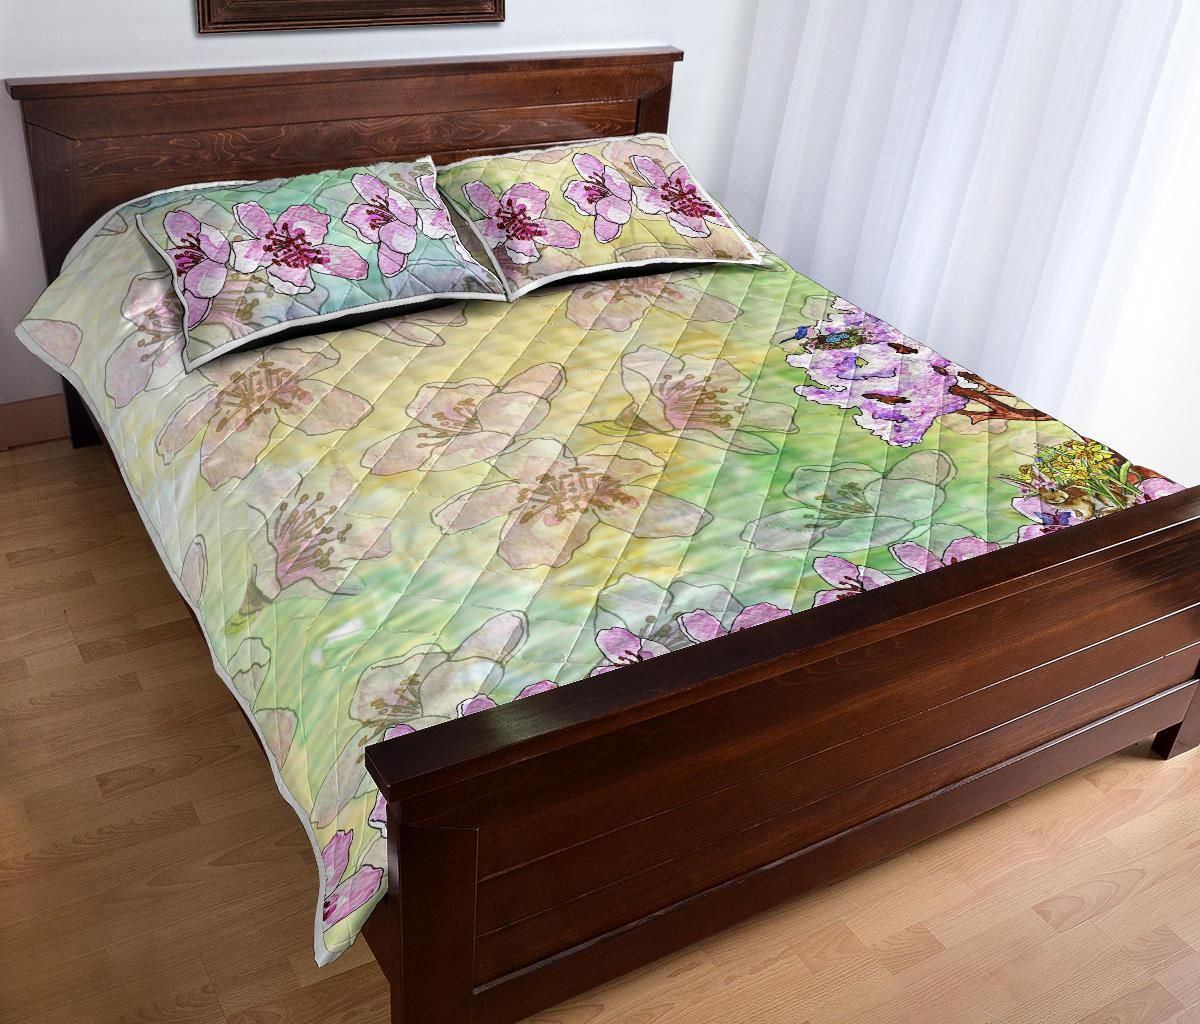 Comfort Quilt Bed Set Collection Spring 11 - Quilt Bed Set - Comfort Quilt Bed Set Collection Spring 11 / King